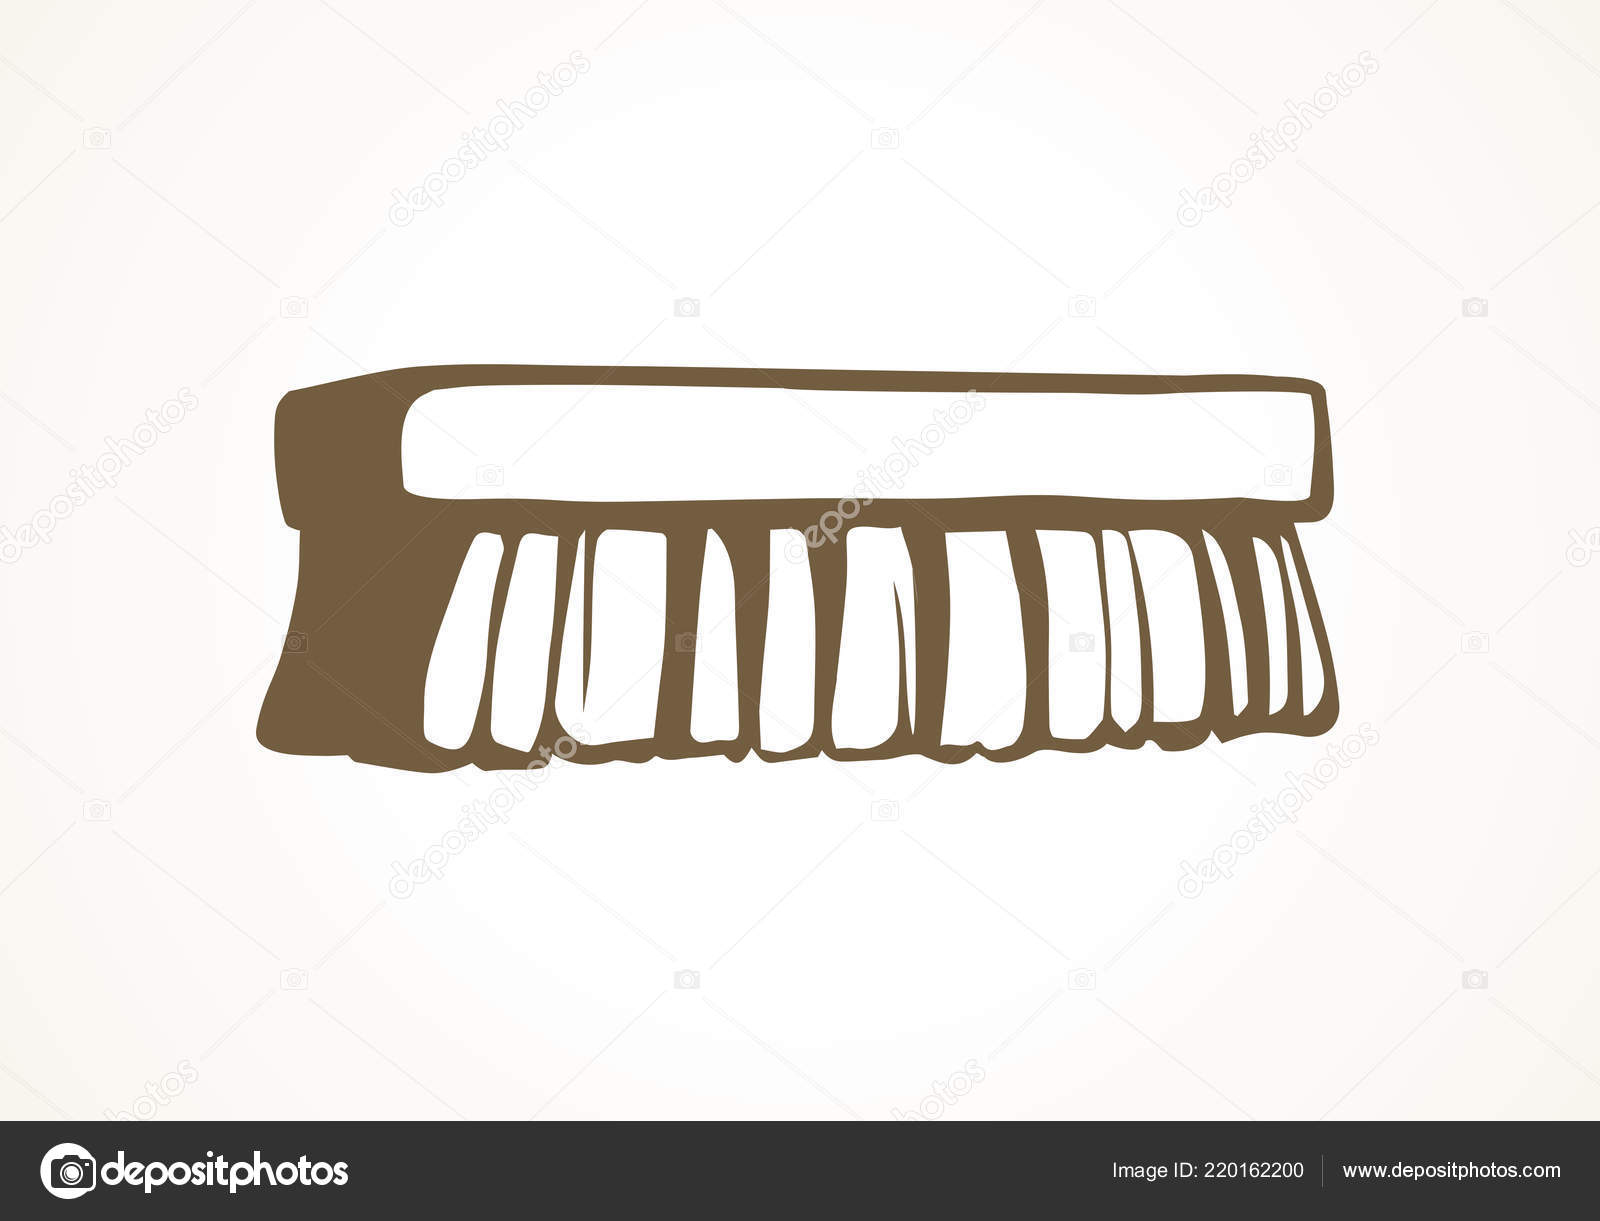 Wooden Wet Scrubber Comb Object White Home Background Outline Black